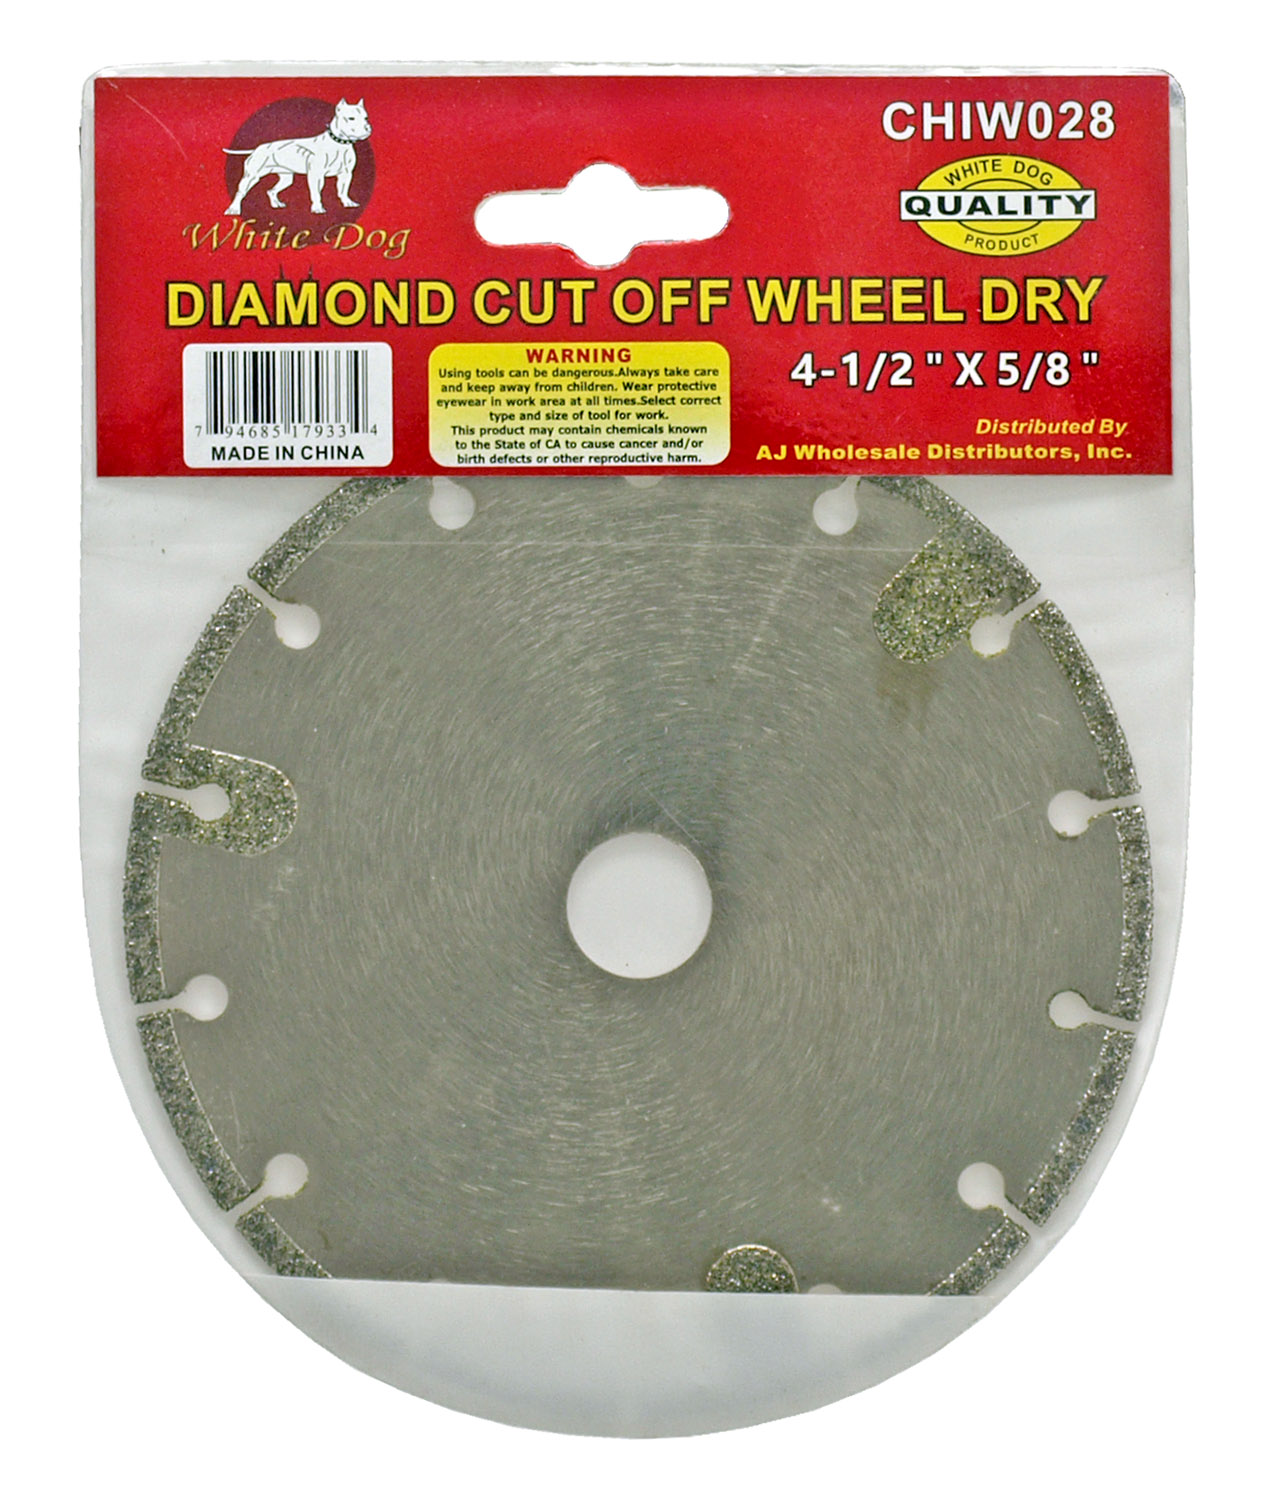 Diamond Cut Off Wheel Dry